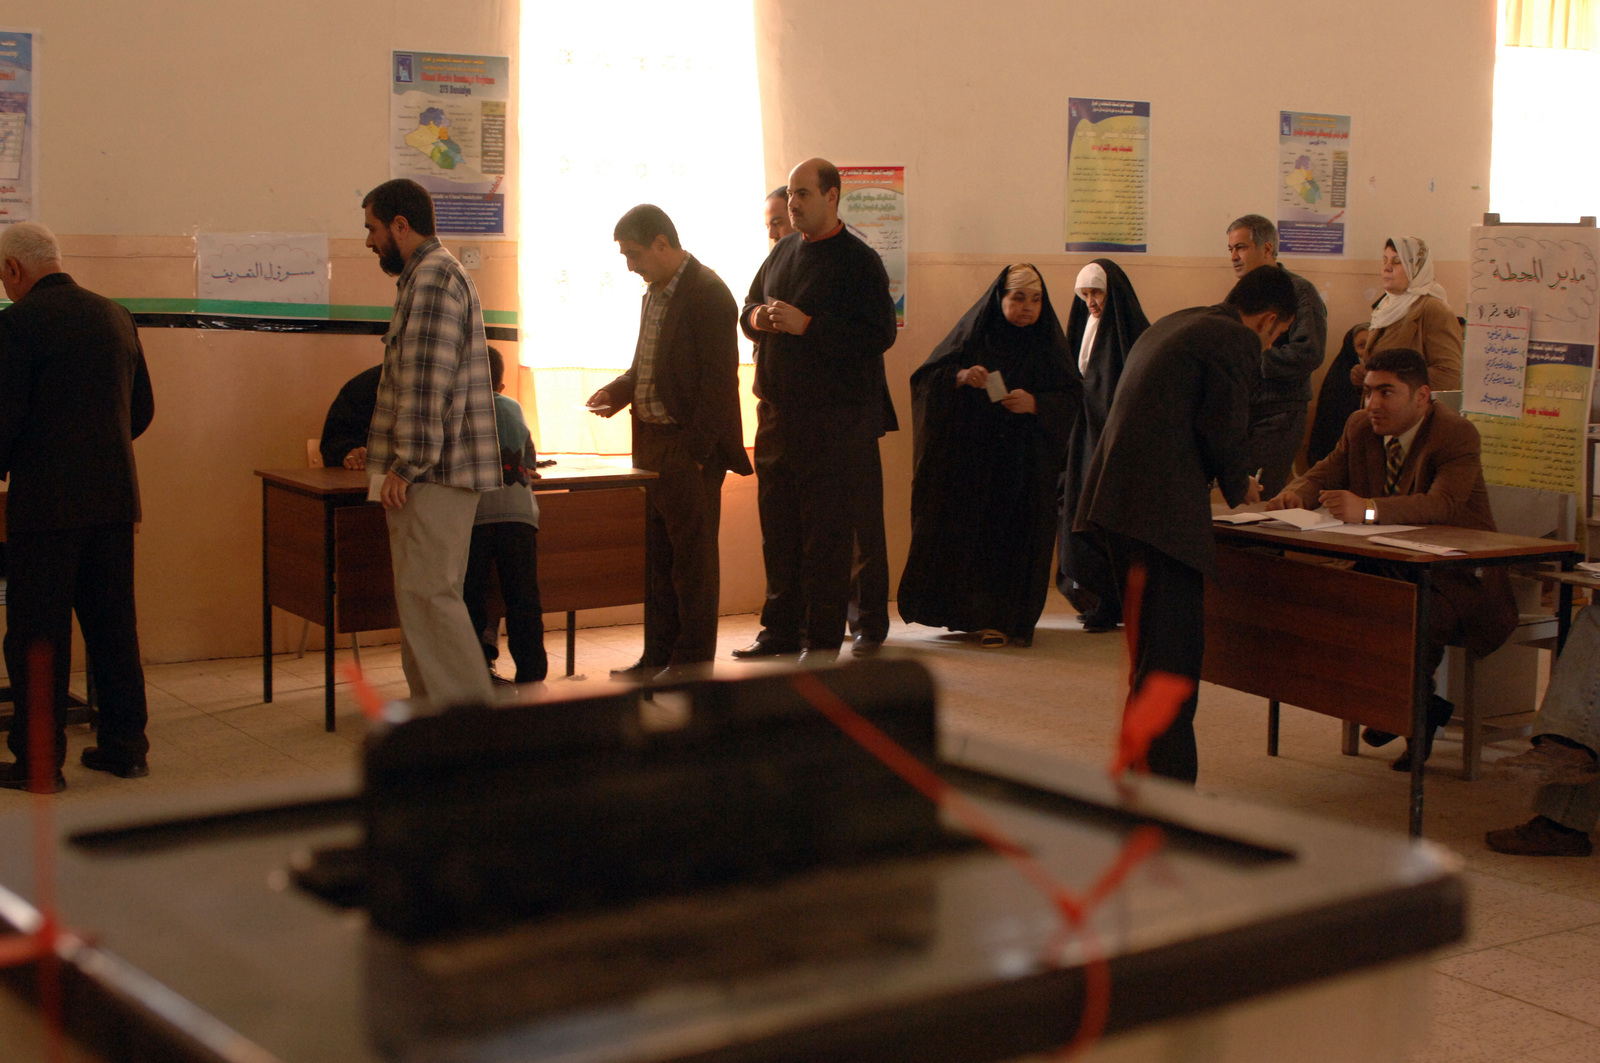 Iraqi citizens stand in line in a polling station in north central Iraq Dec. 15, 2005. Iraqis are electing their first permanent parliamentary government, which will lead this new democracy for the next four years. (U.S. Army photo by SPC. Timothy Kingston) (Released)